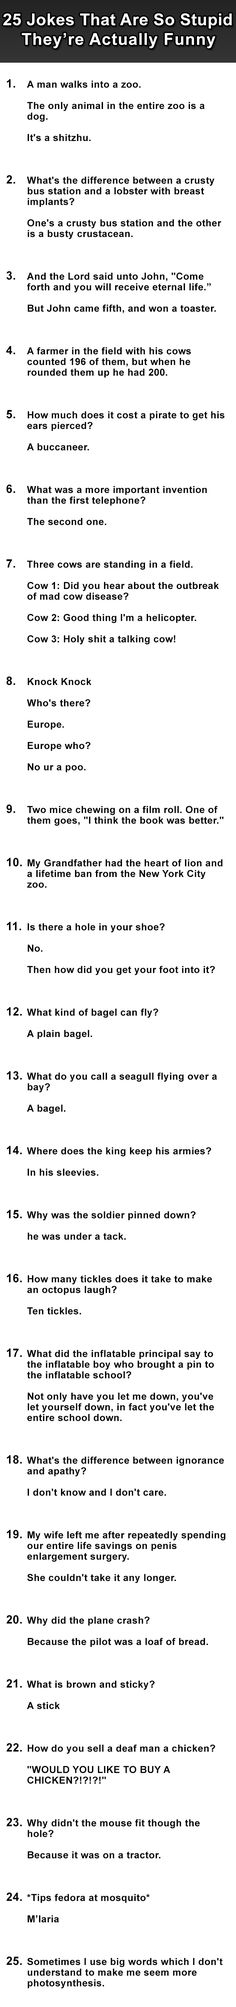 25 Jokes That Are So Stupid They're Actually Funny. #14 Is Priceless.